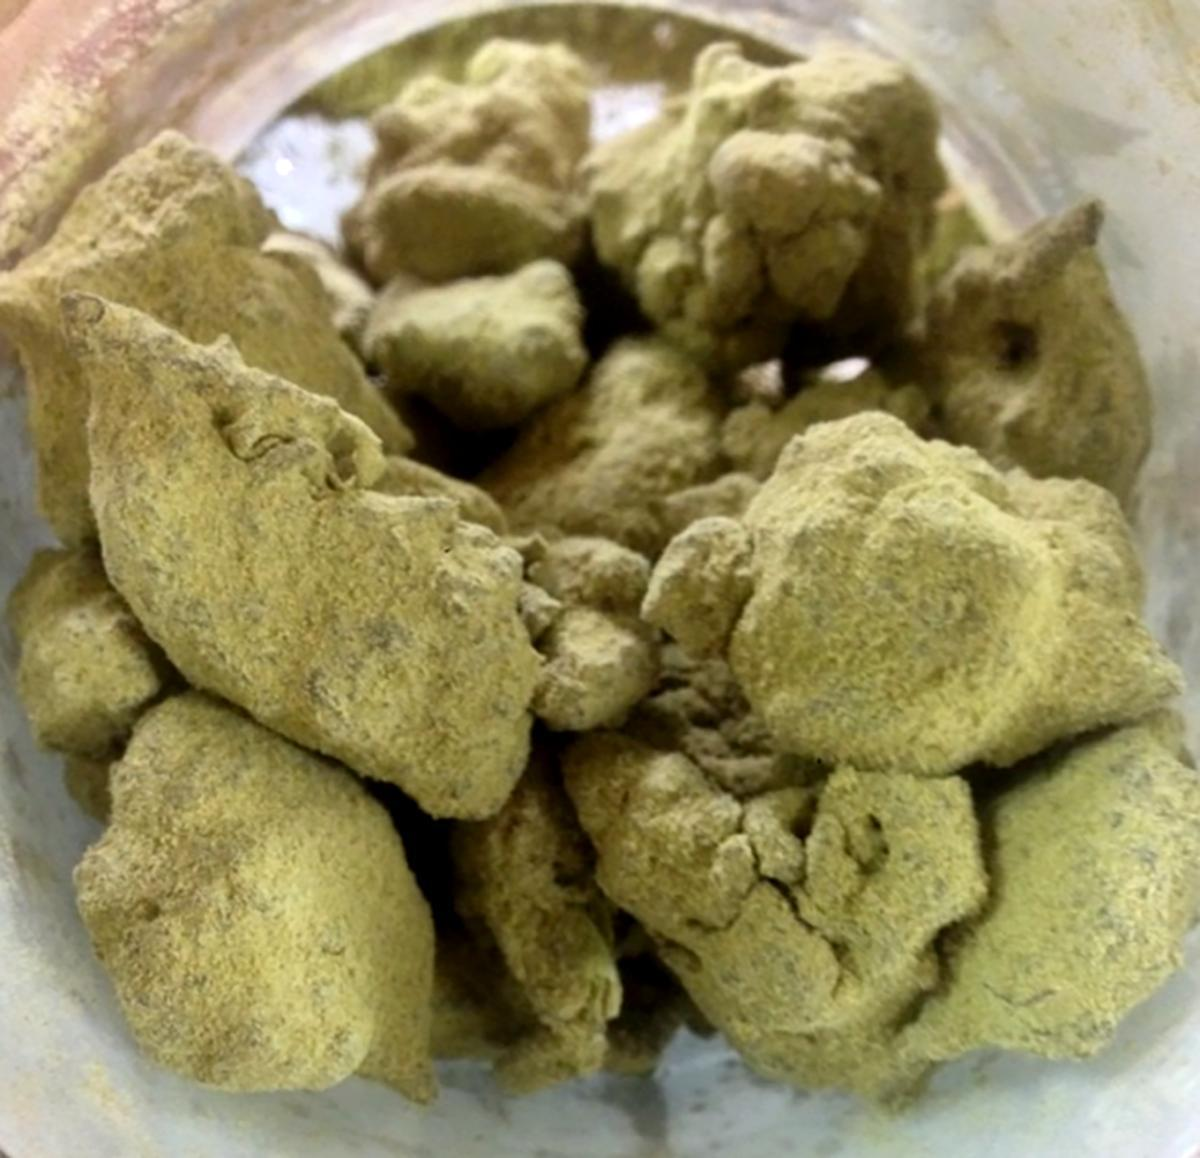 Buckle Up Friends — Moon Rocks Get You Really, Really High